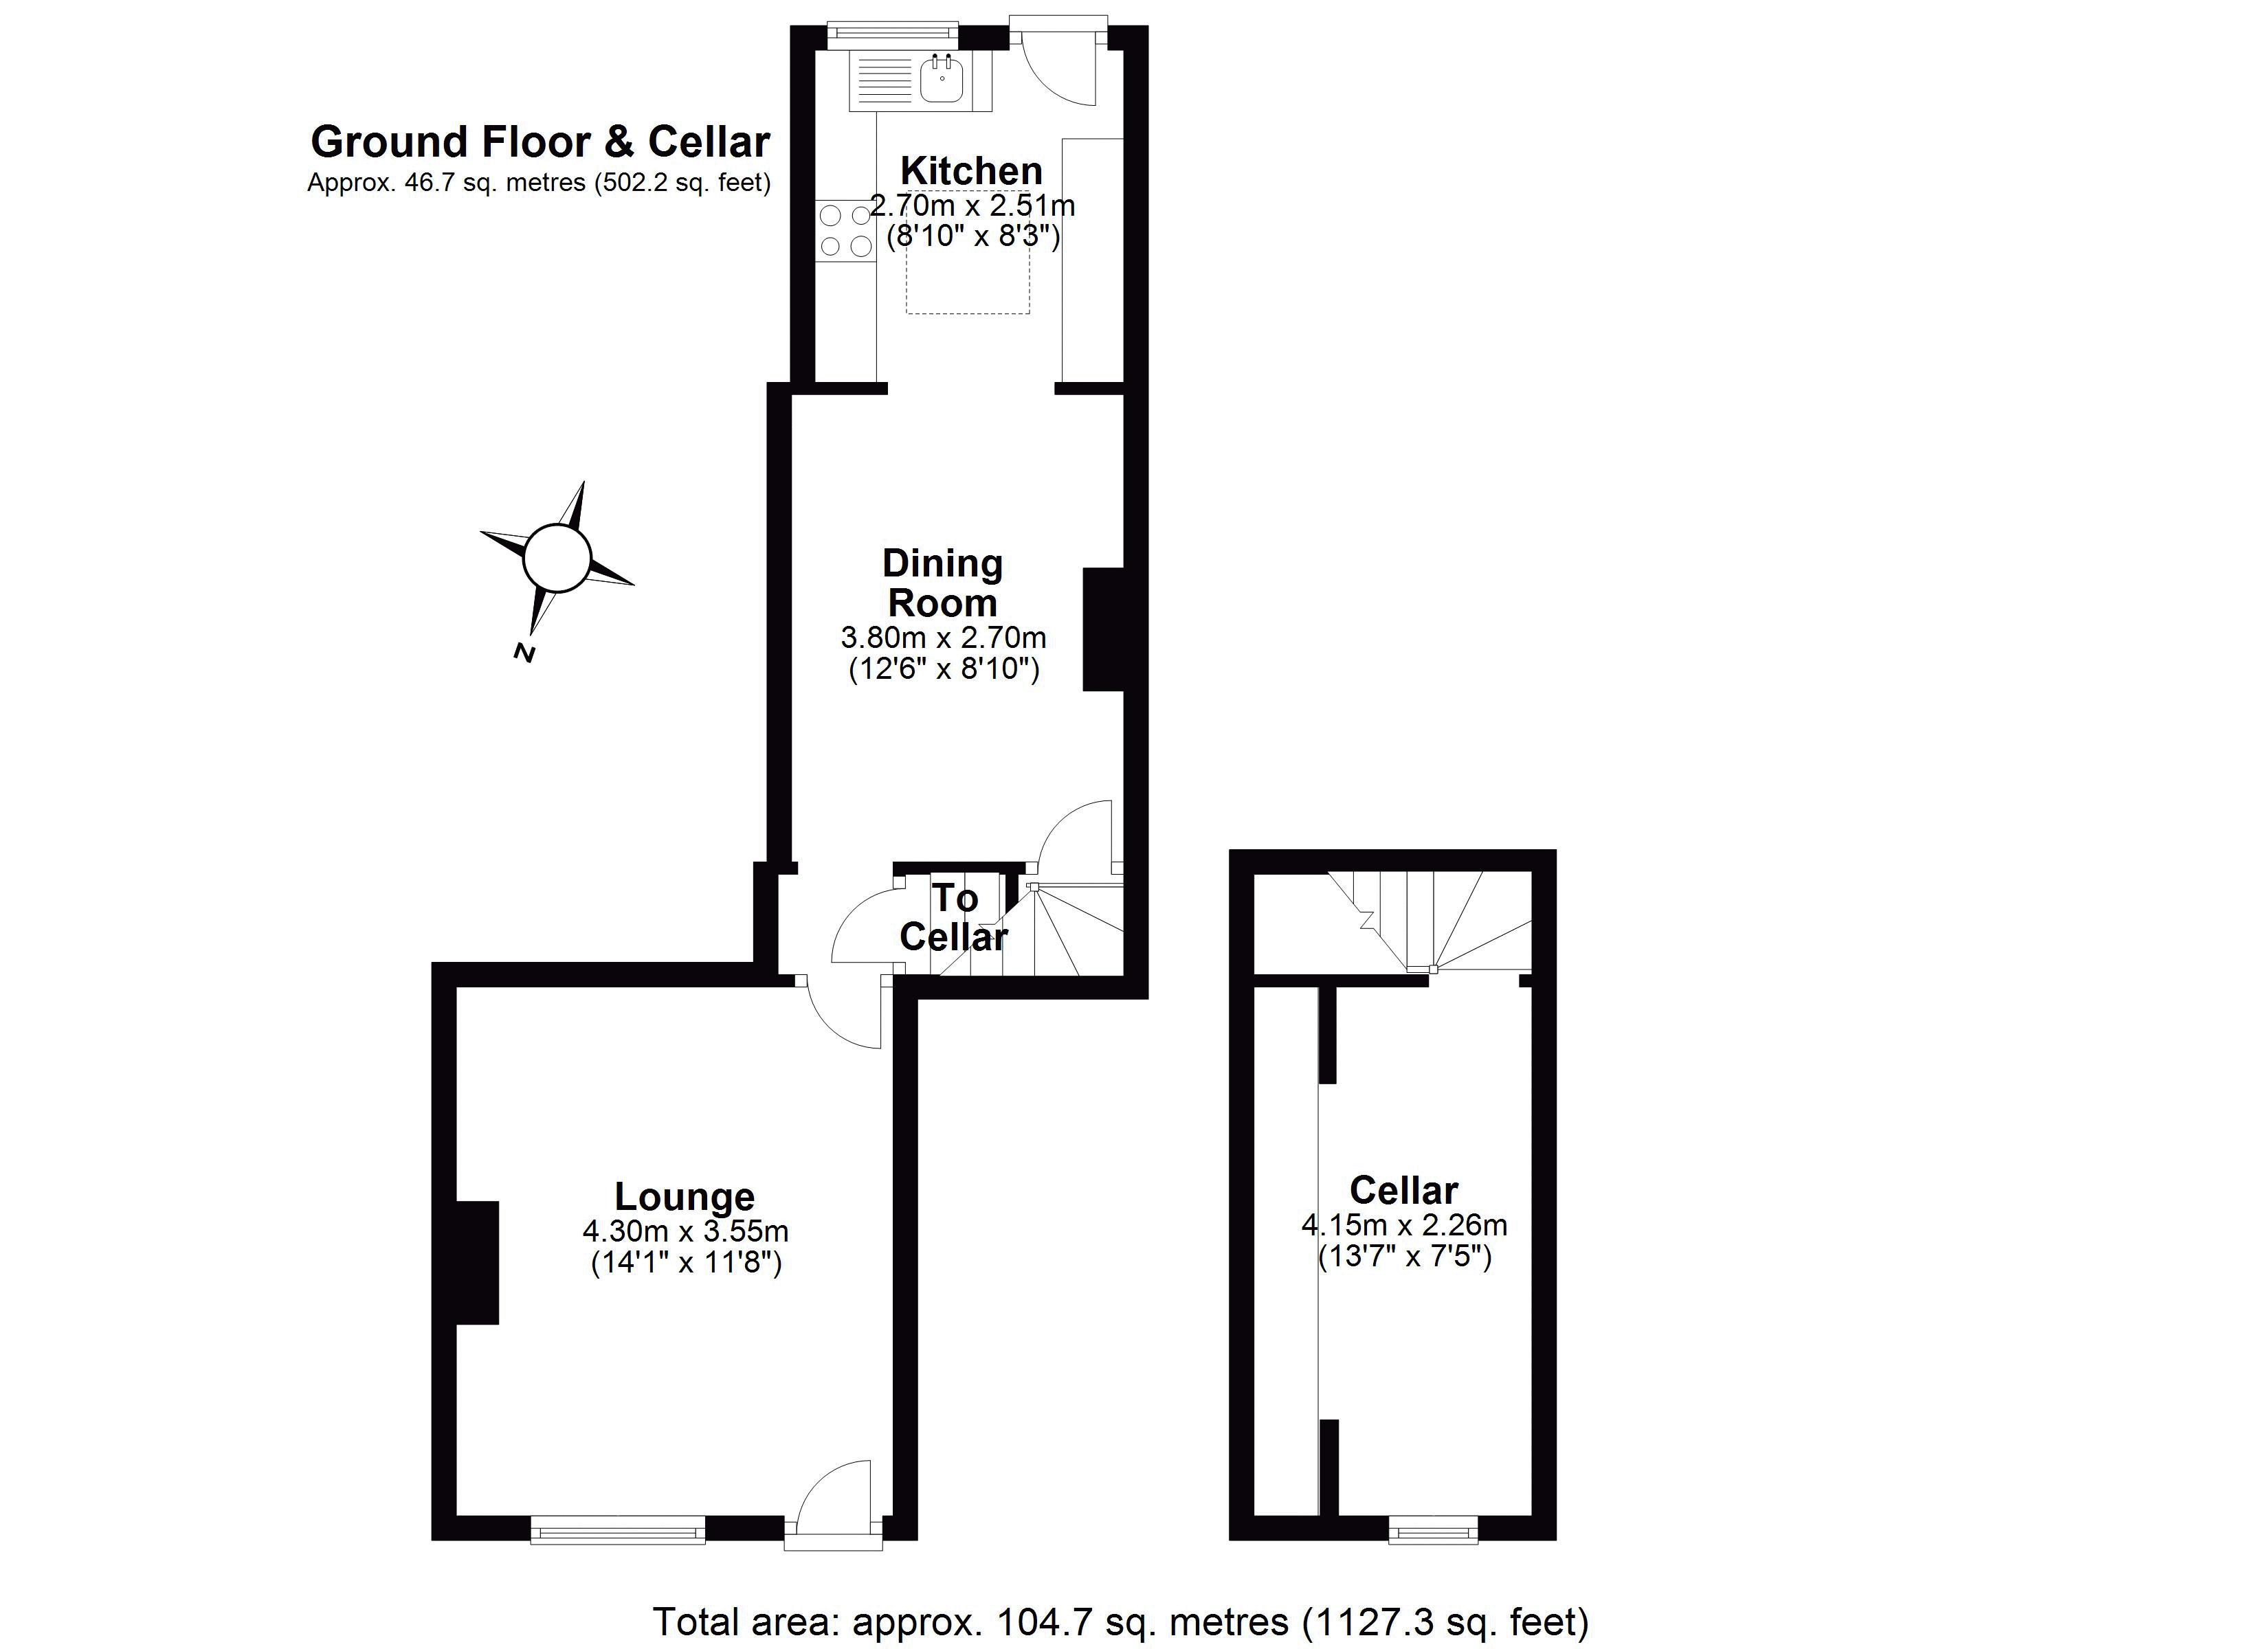 3 Station Road Ground Floor Plan